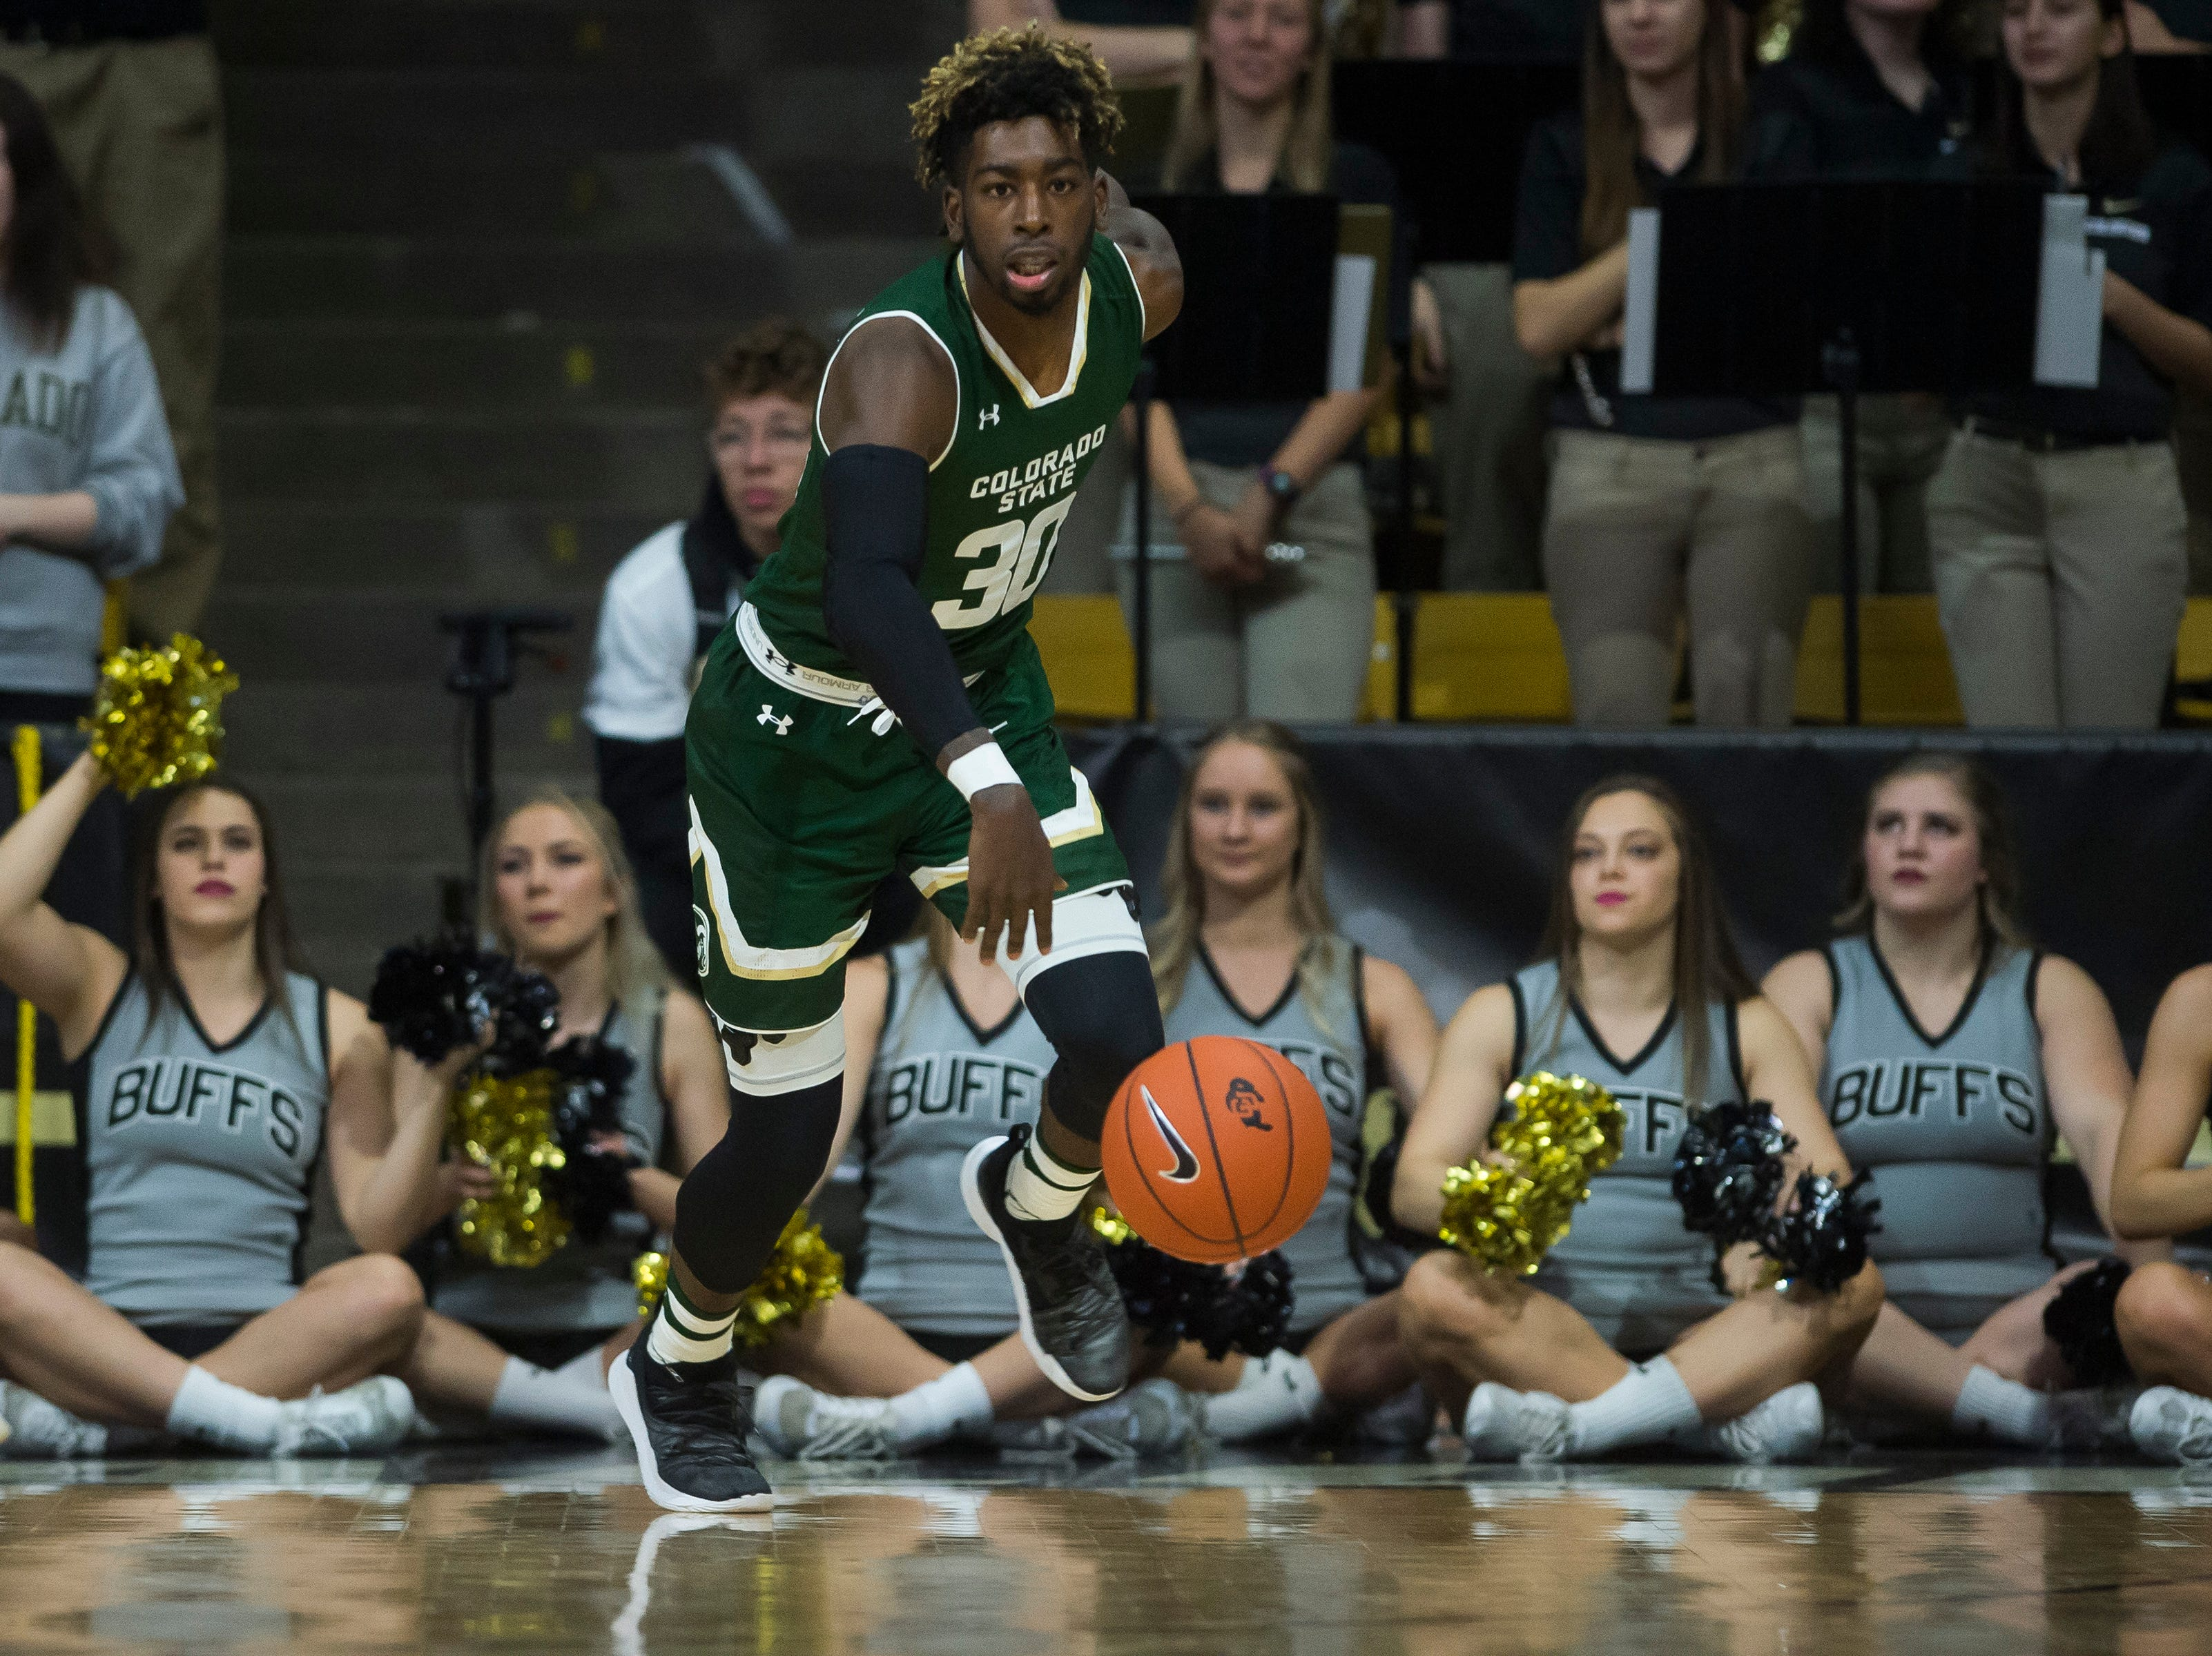 Colorado State University junior guard Kris Martin (30) takes the ball down-court during a game against the University of Colorado on Saturday, Dec. 1, 2018, at the CU Event Center in Boulder, Colo.